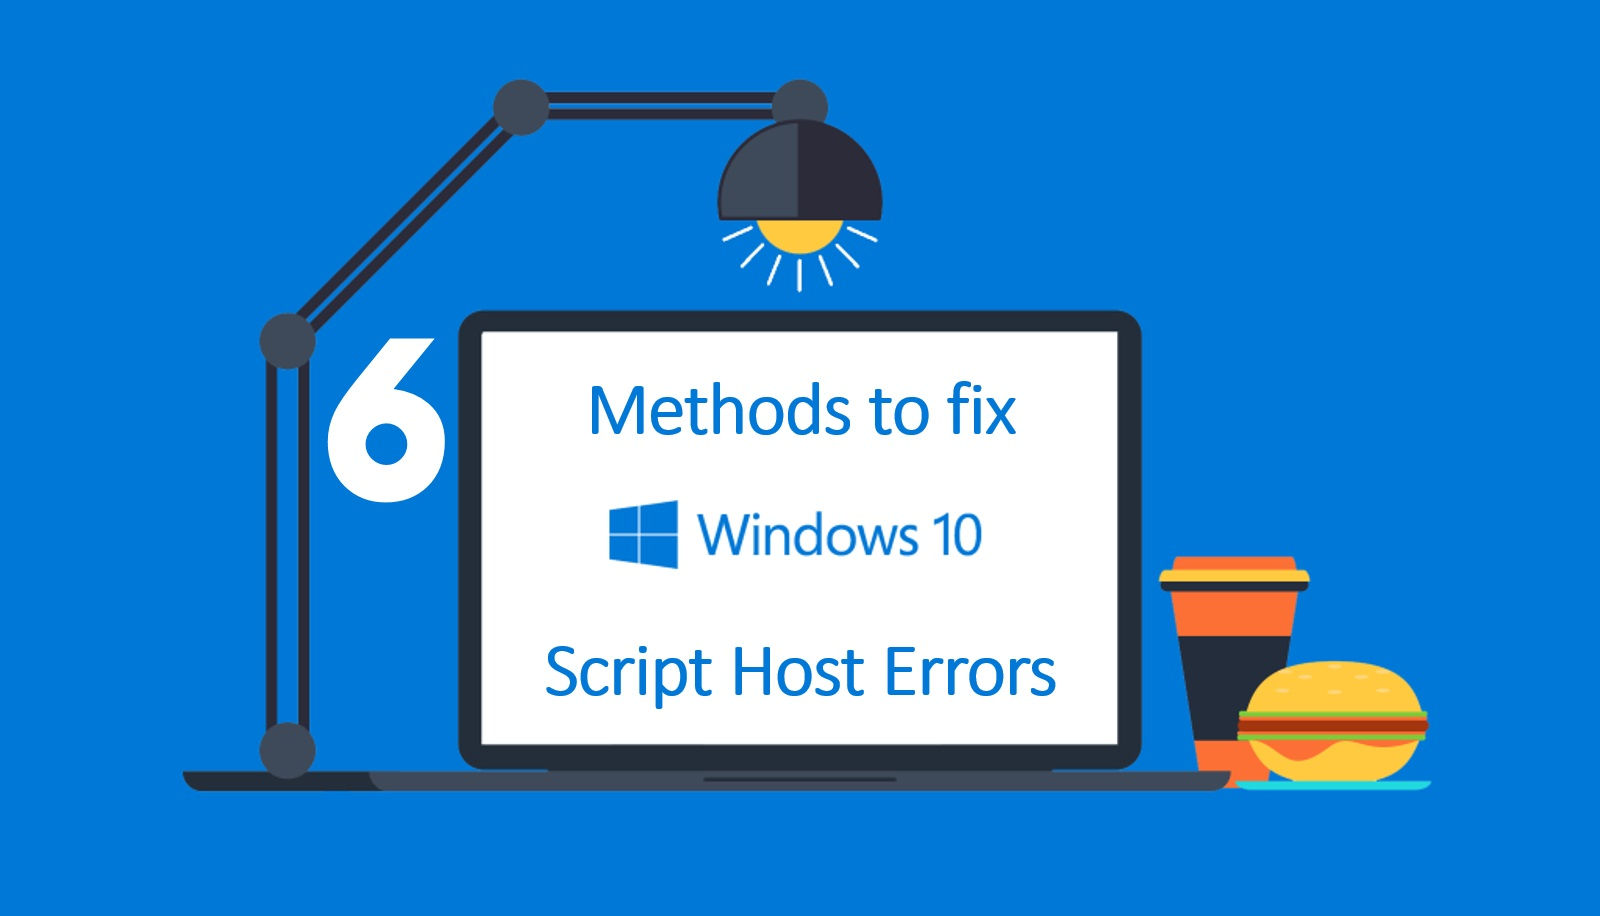 6 Methods to fix Windows 10 Script Host Errors